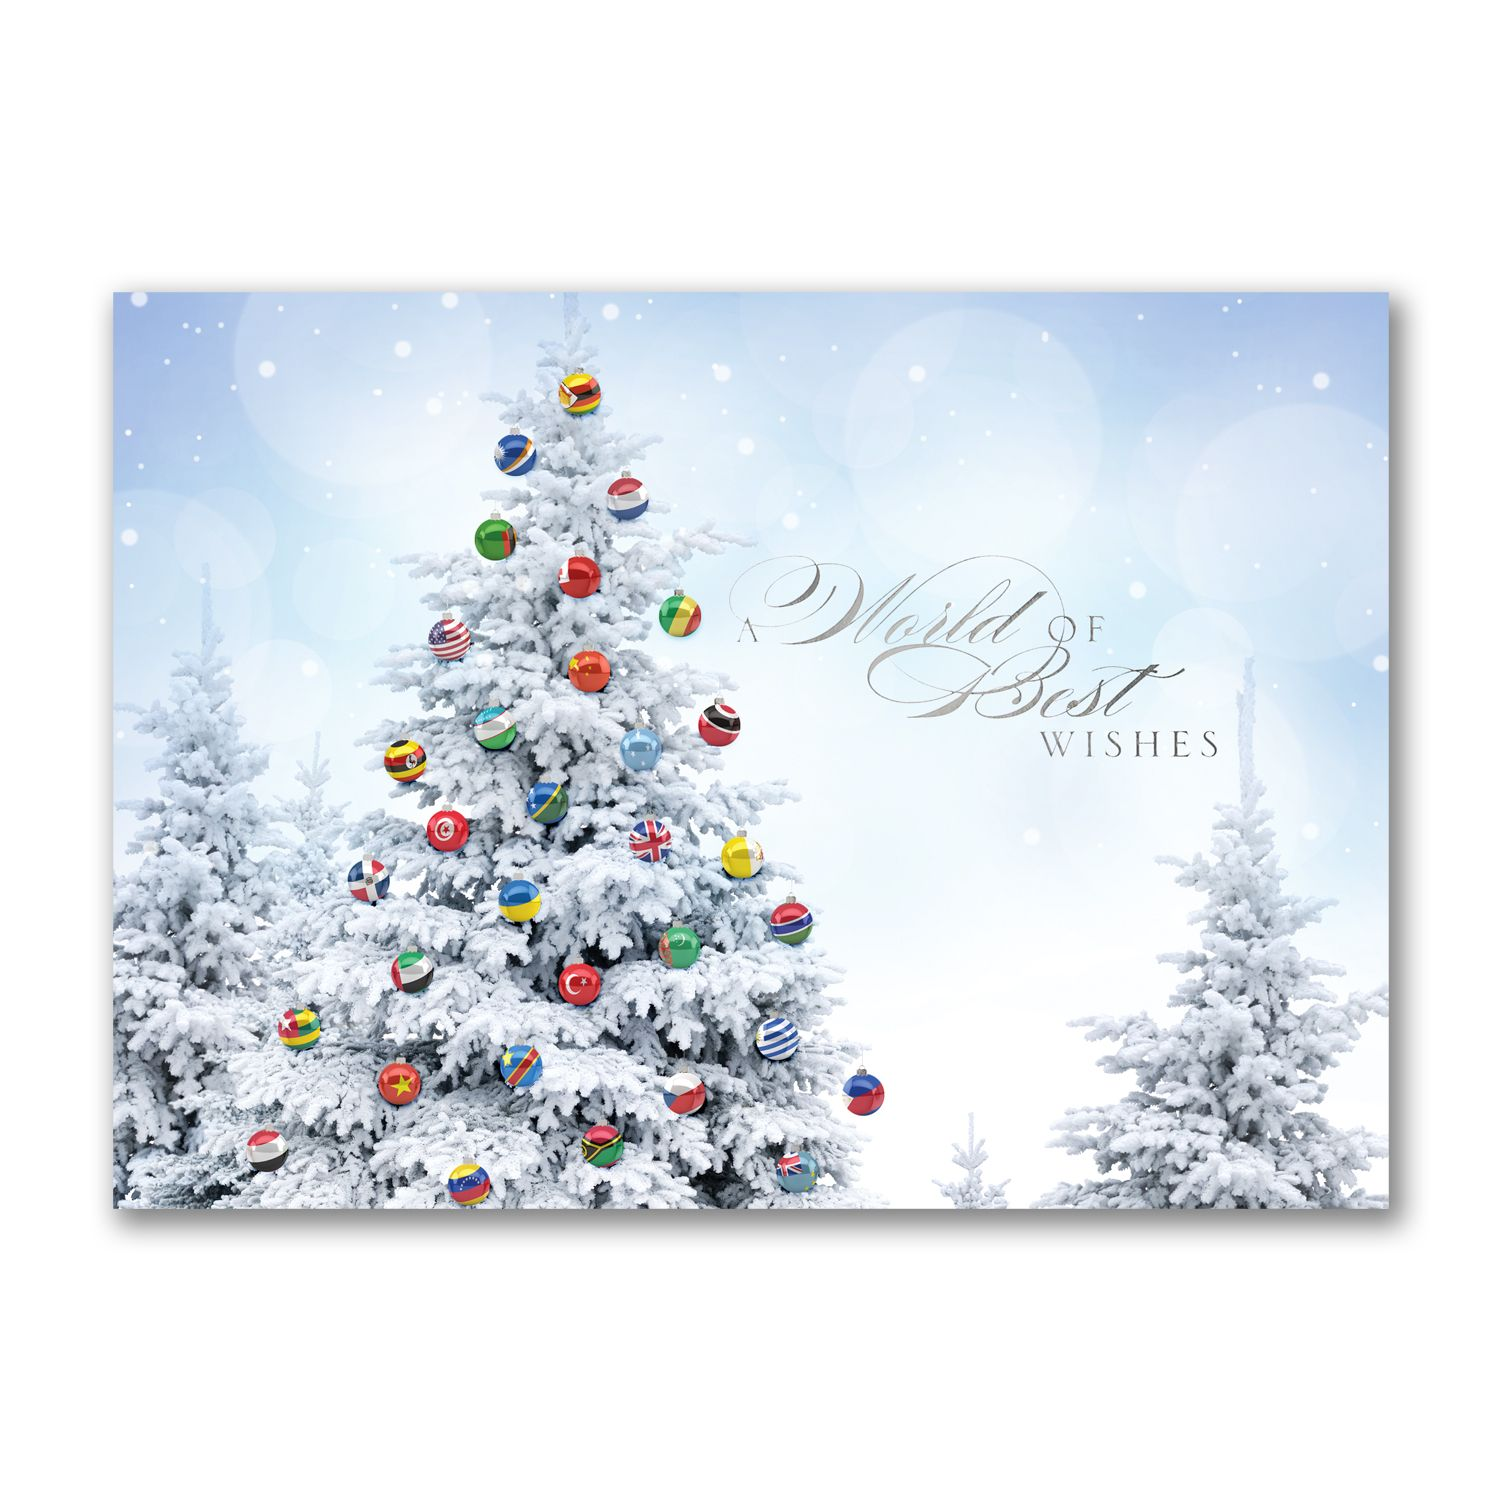 Joined together international holiday cards httppartyblock joined together to send a world of best wishes a snowy tree is decorated with flagged ornaments from around the world on this holiday card kristyandbryce Image collections